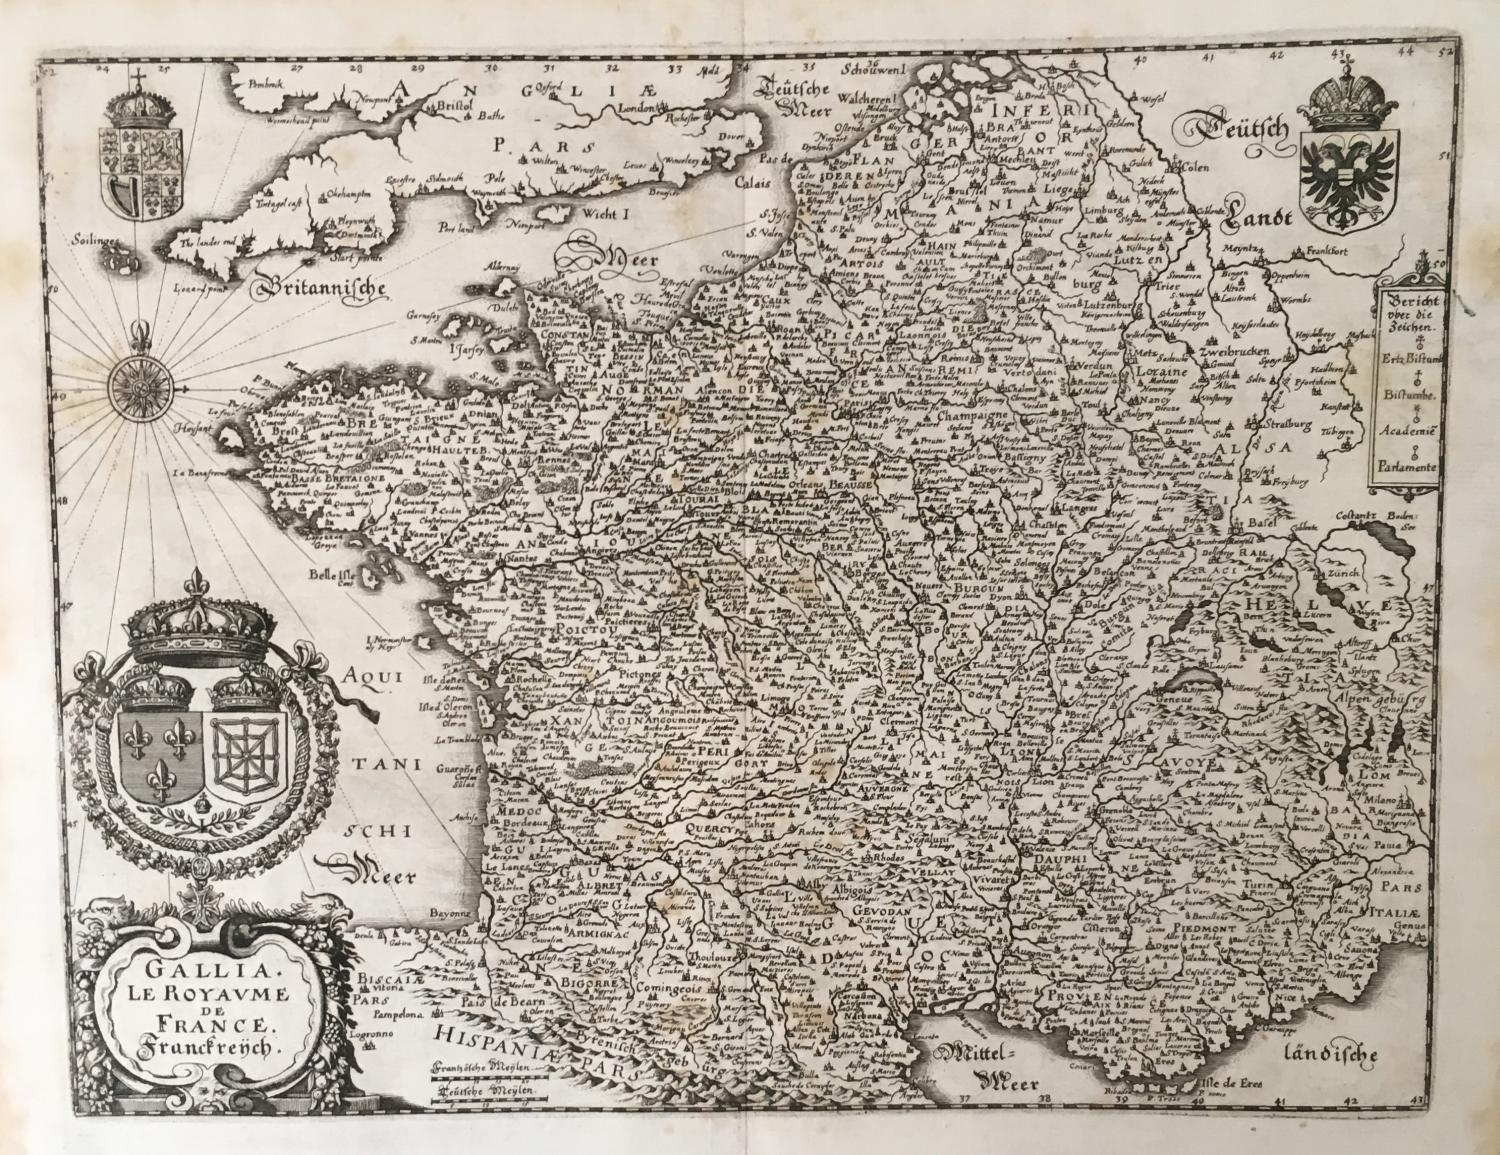 Merian - Gallia. Le Royaume de France